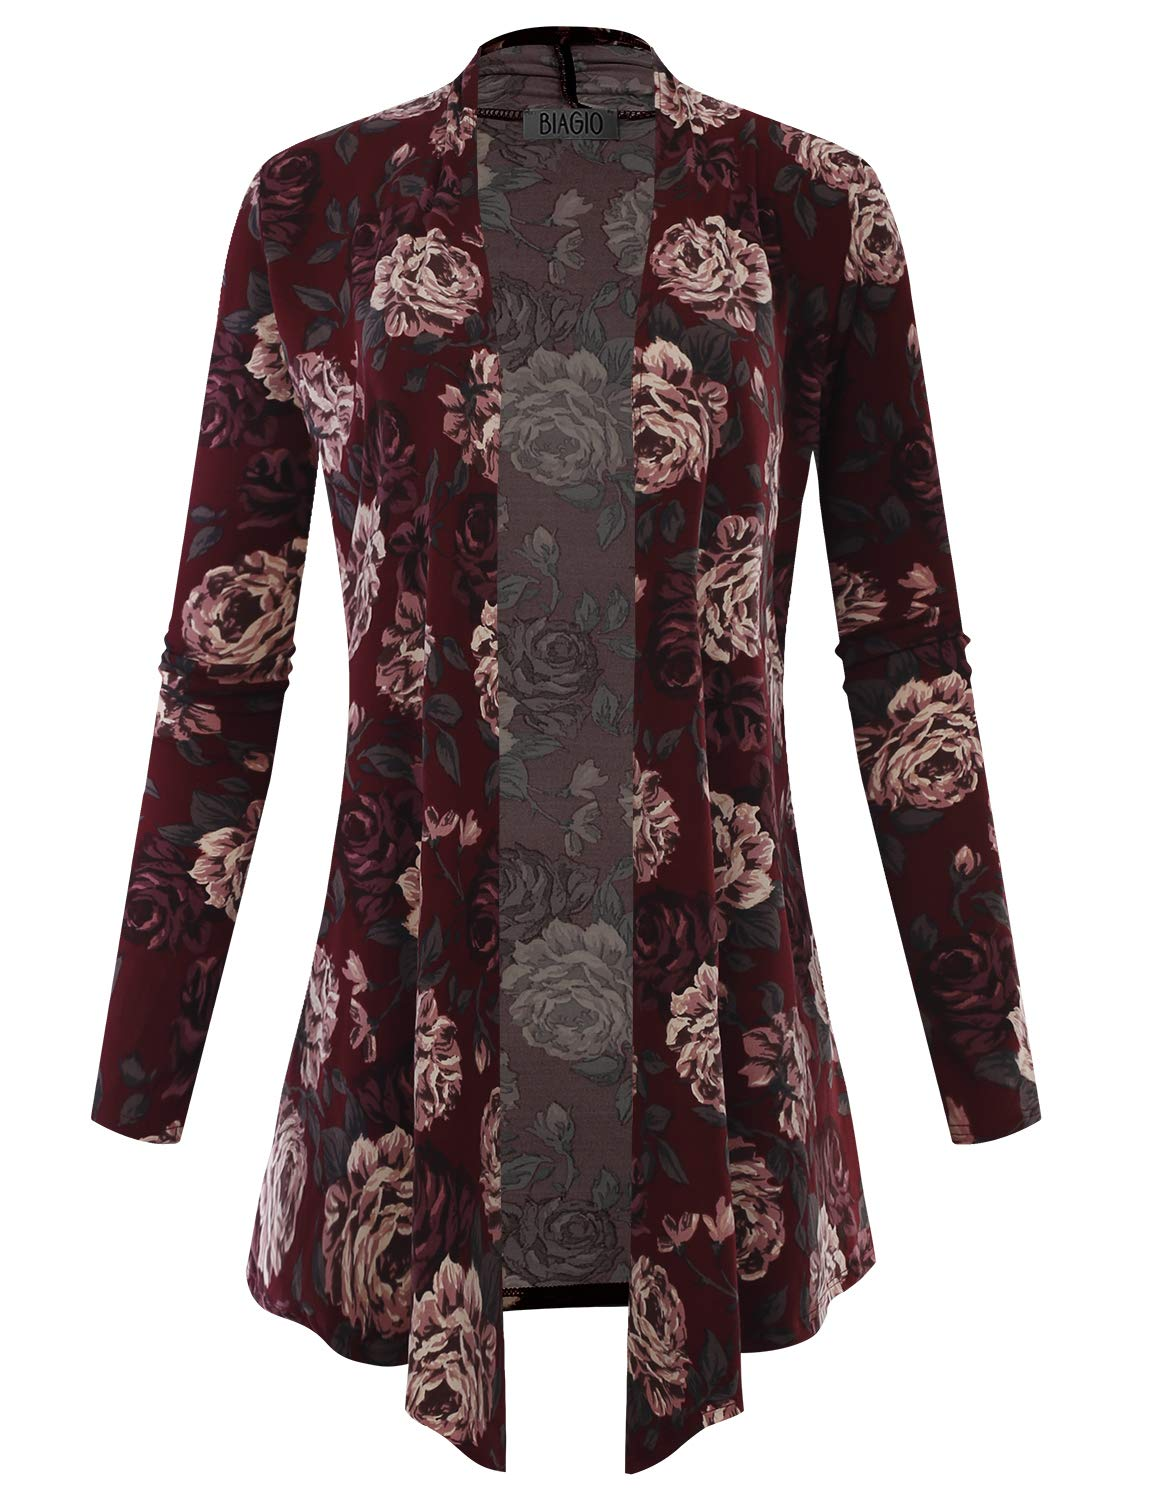 BIADANI Women's Open Front Lightweight Cardigan Floral Print 601039 Burgundy Medium